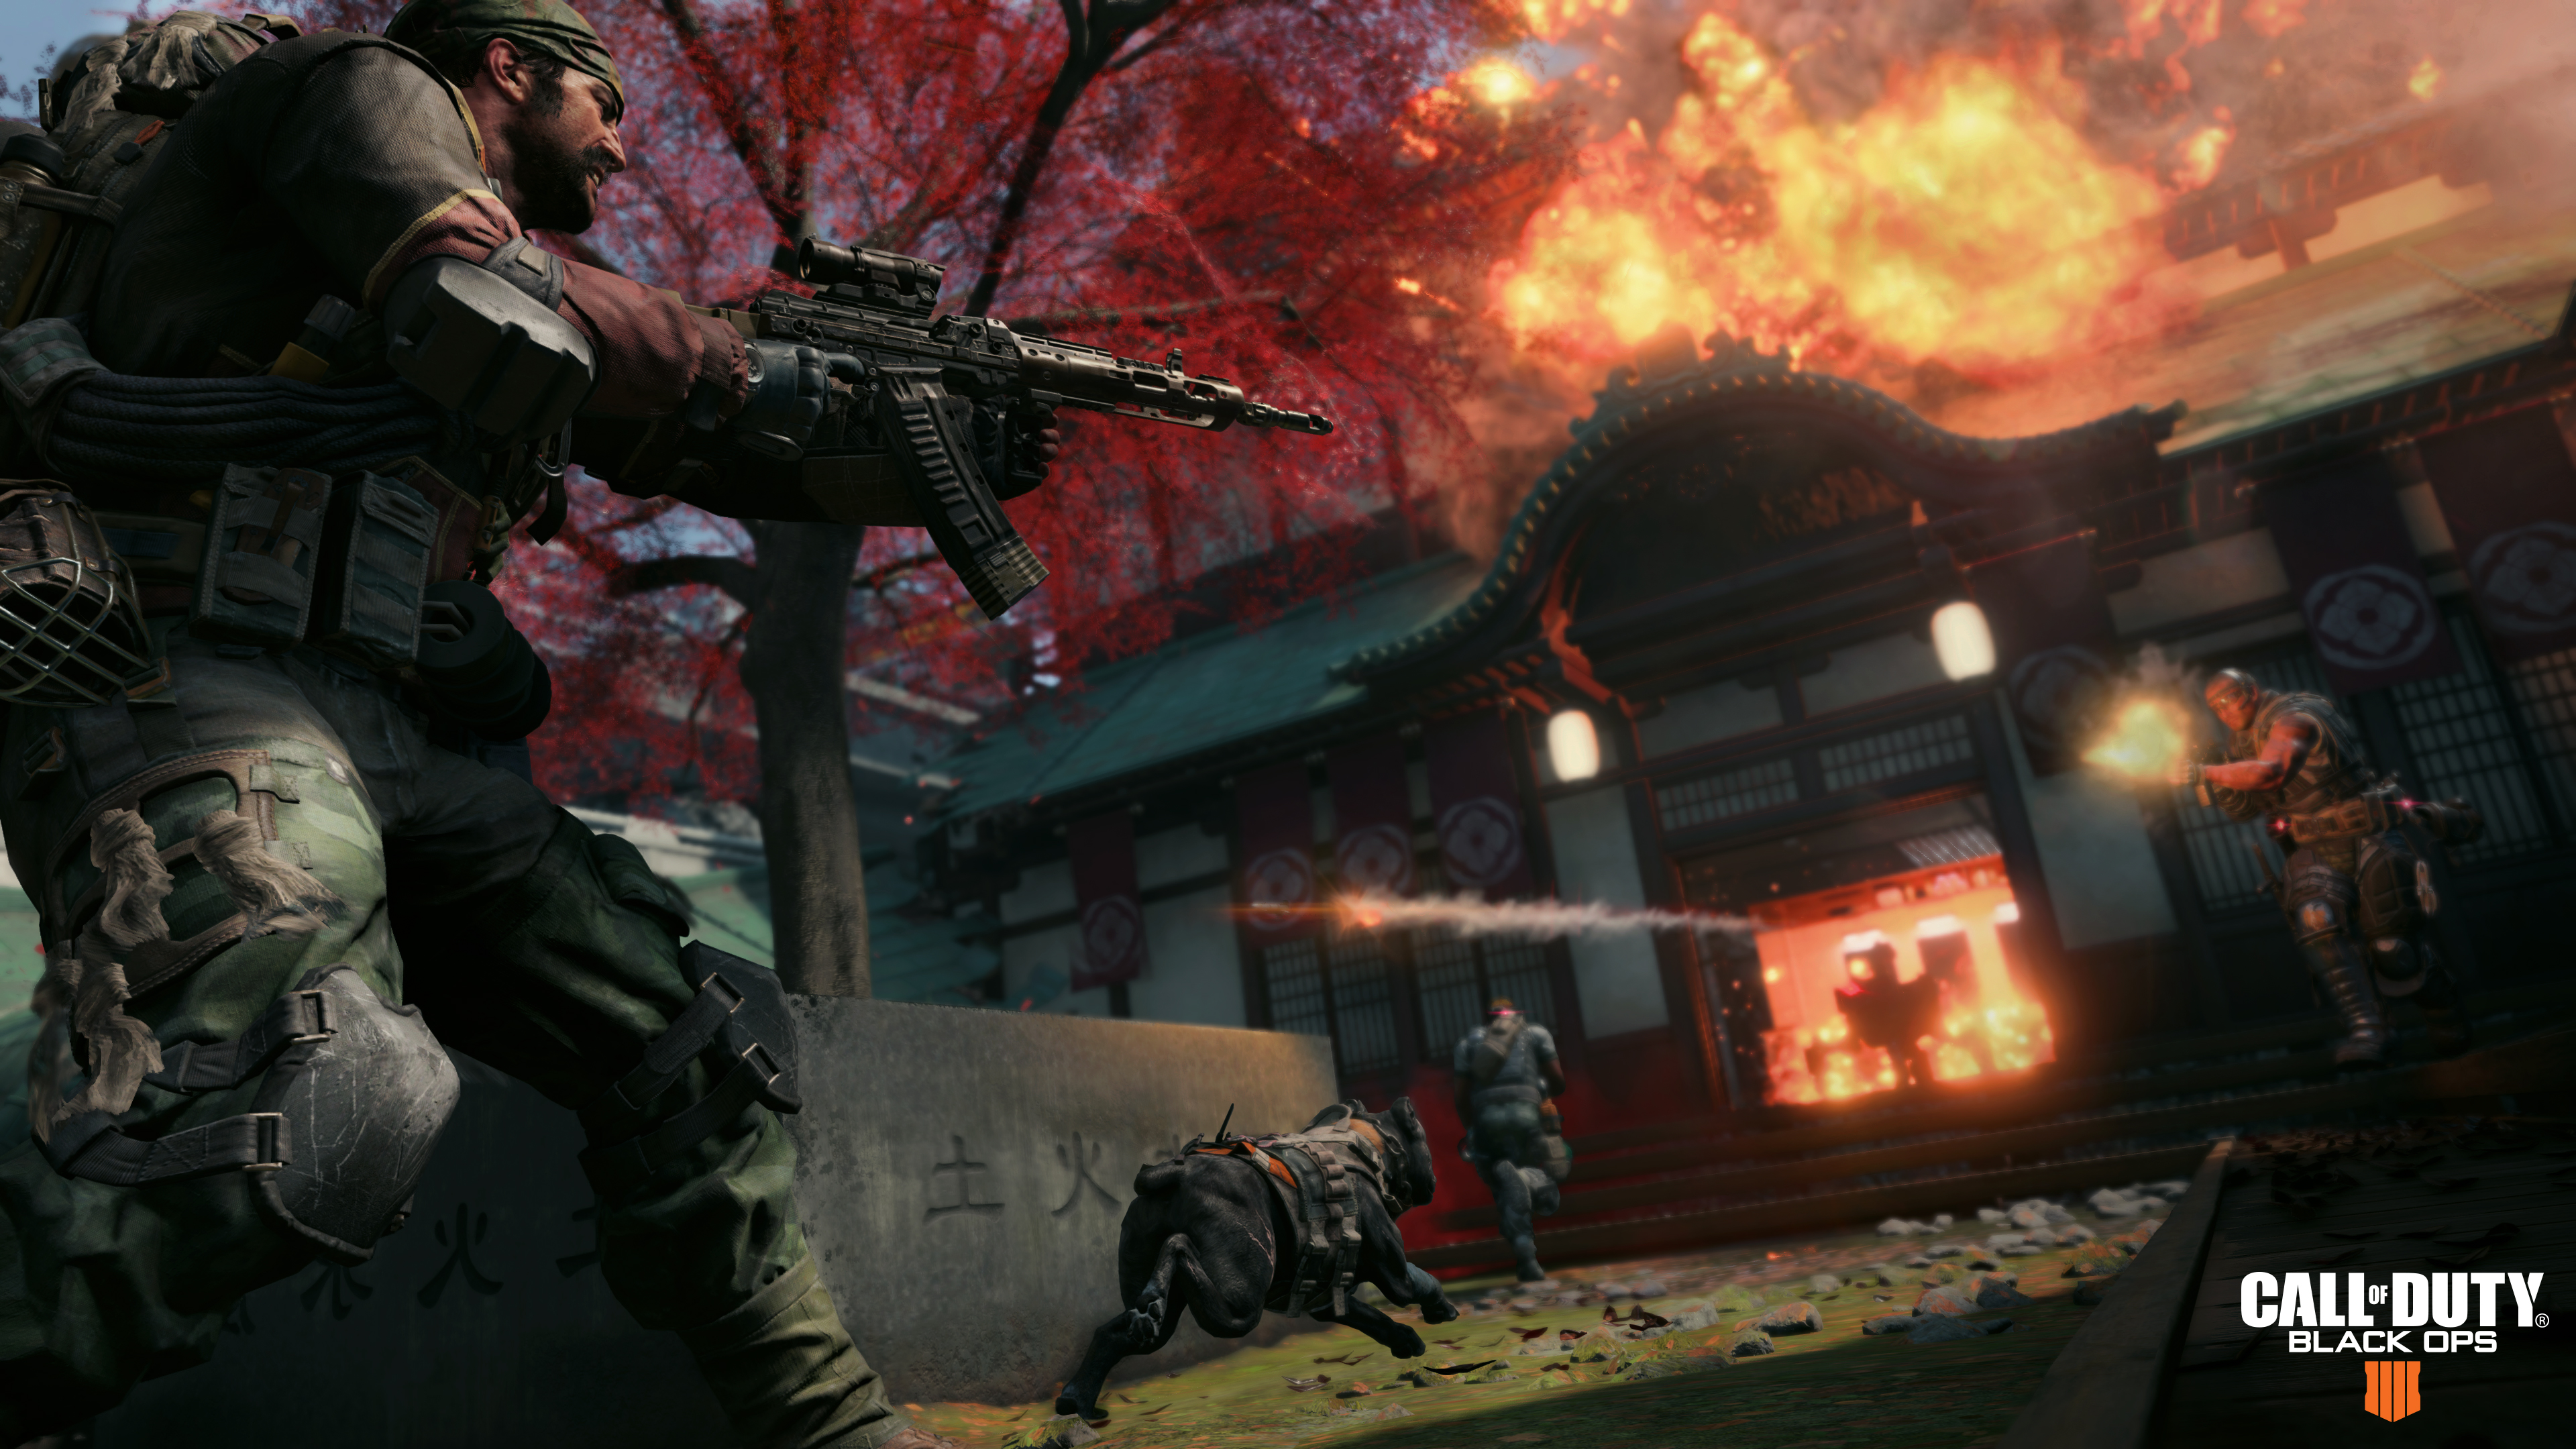 Call of Duty Black Ops 4: Leaked Images Show Map Alternates